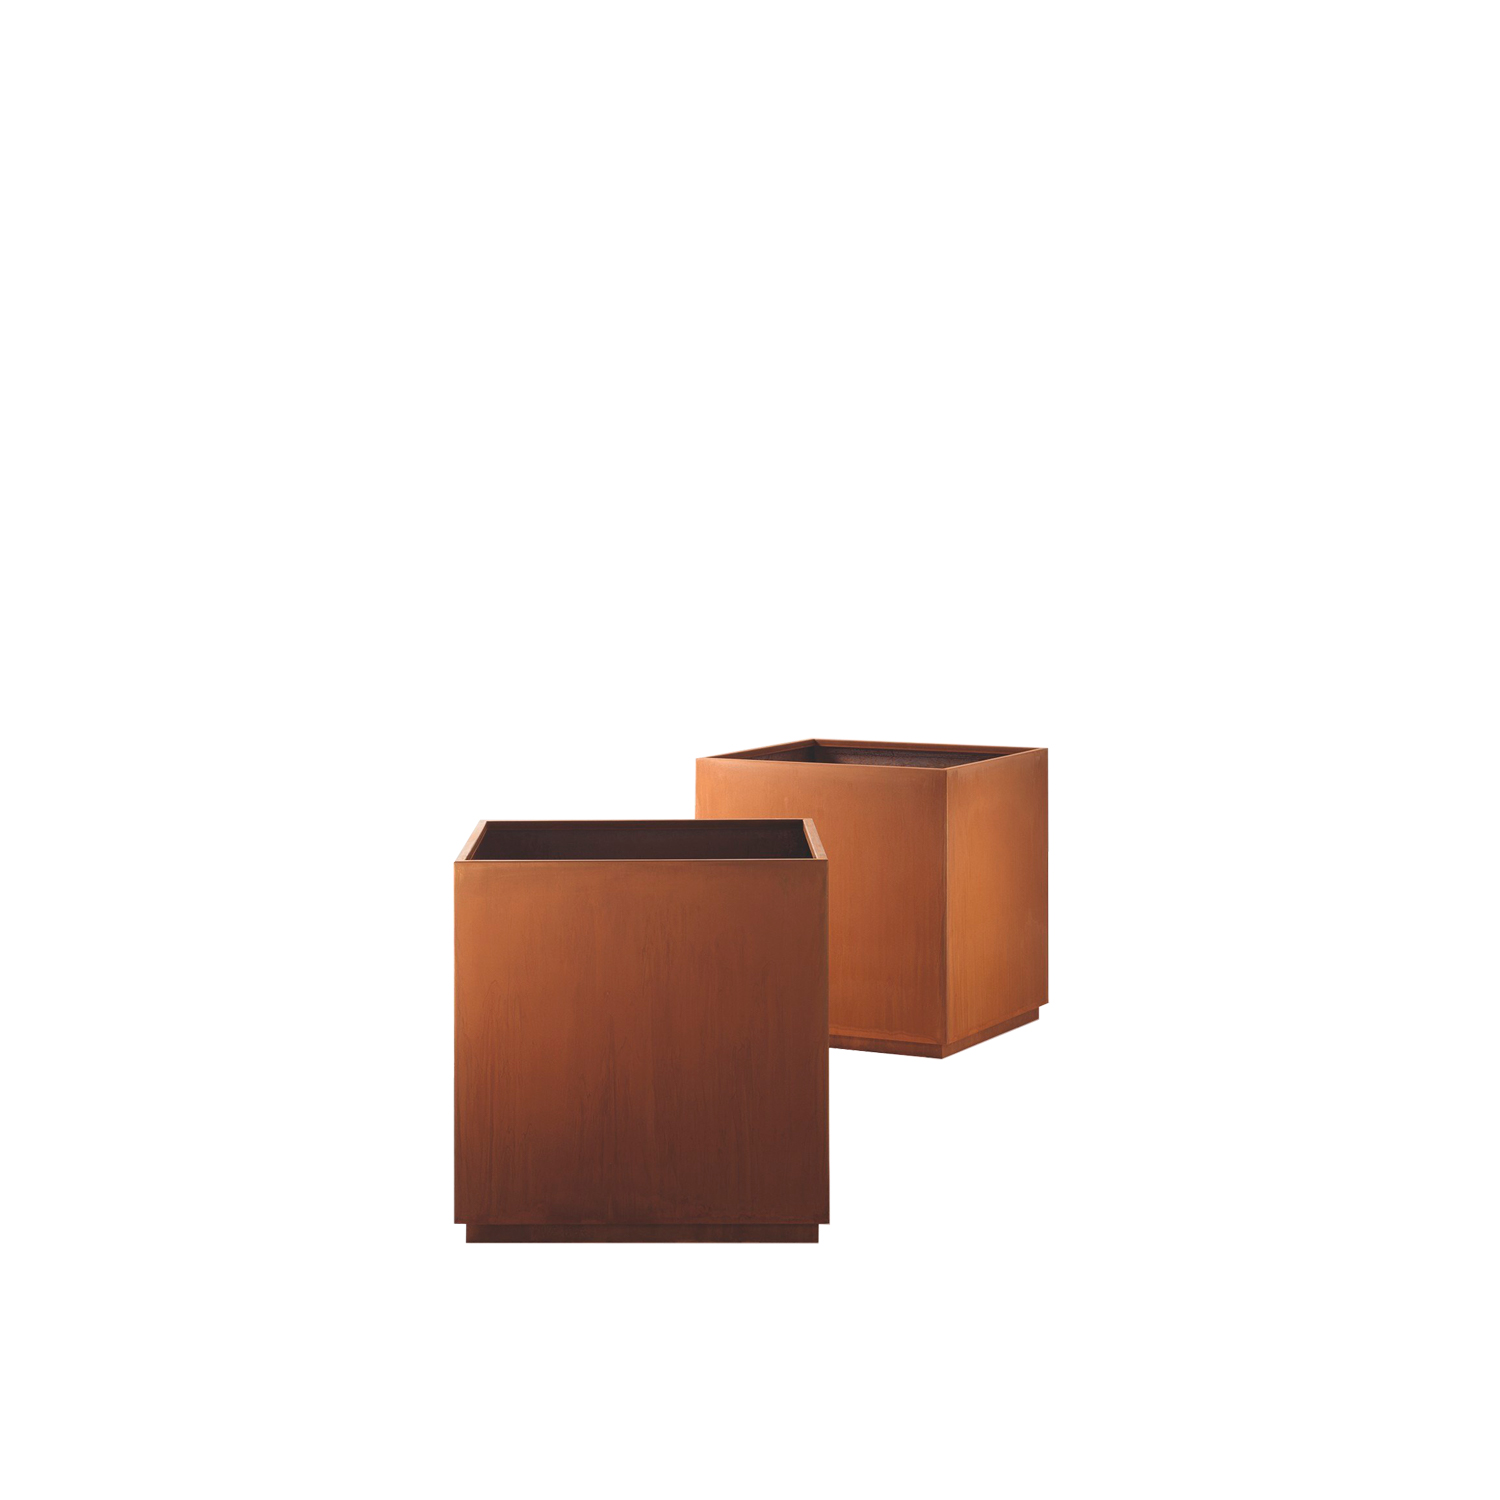 Cube Plant Pot  - Cube is a line of containers with absolute formal sobriety, where the completeness of the cube is combined with different finishes abounding in personality.‎ Rigor and creative impetus fuse in a timeless composition that blends with the open space around it.‎